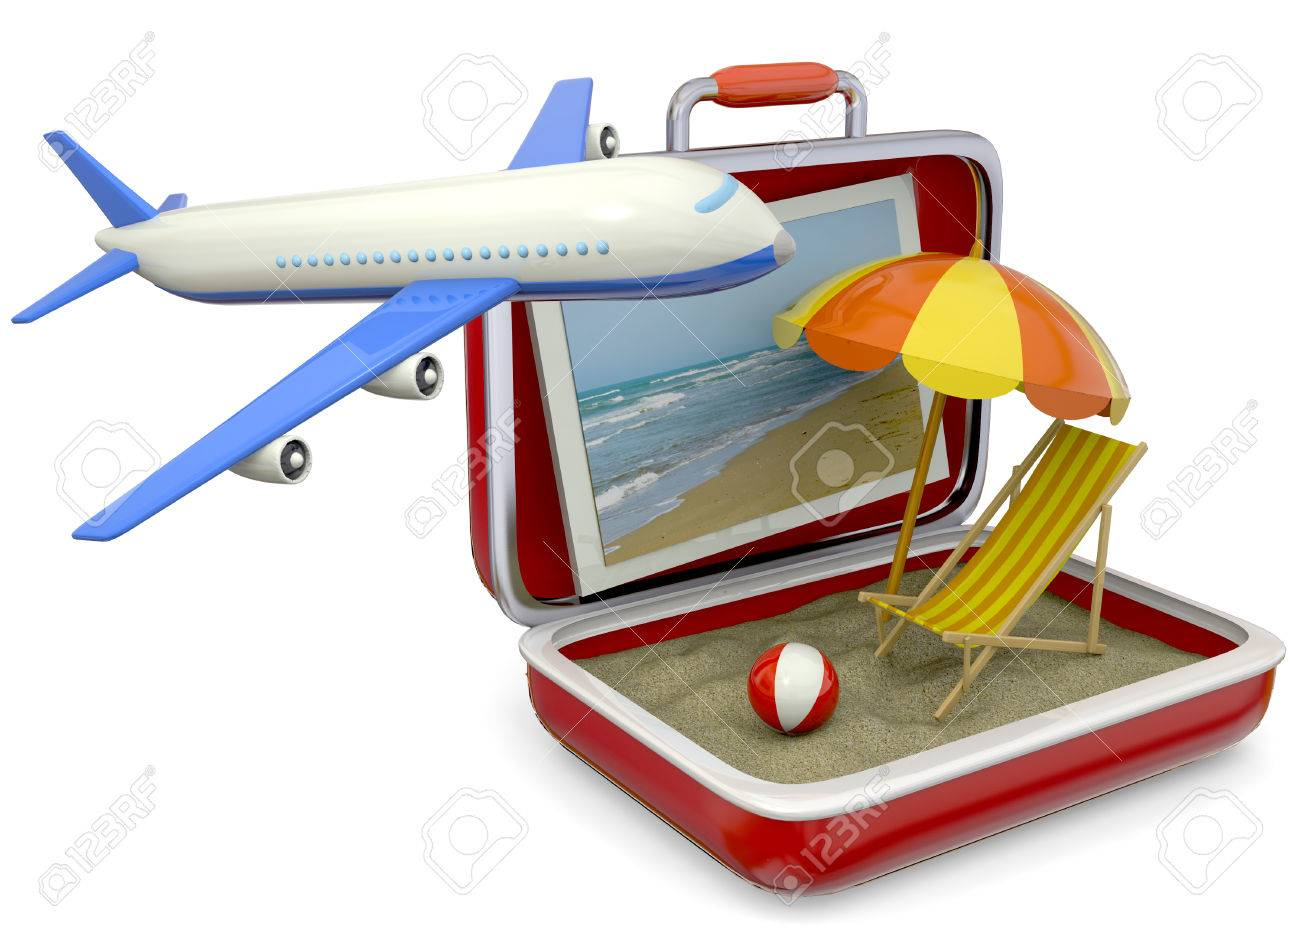 air travel beach chairs philippe starck broom chair umbrella life buoy suitcase airplane and sand stock photo